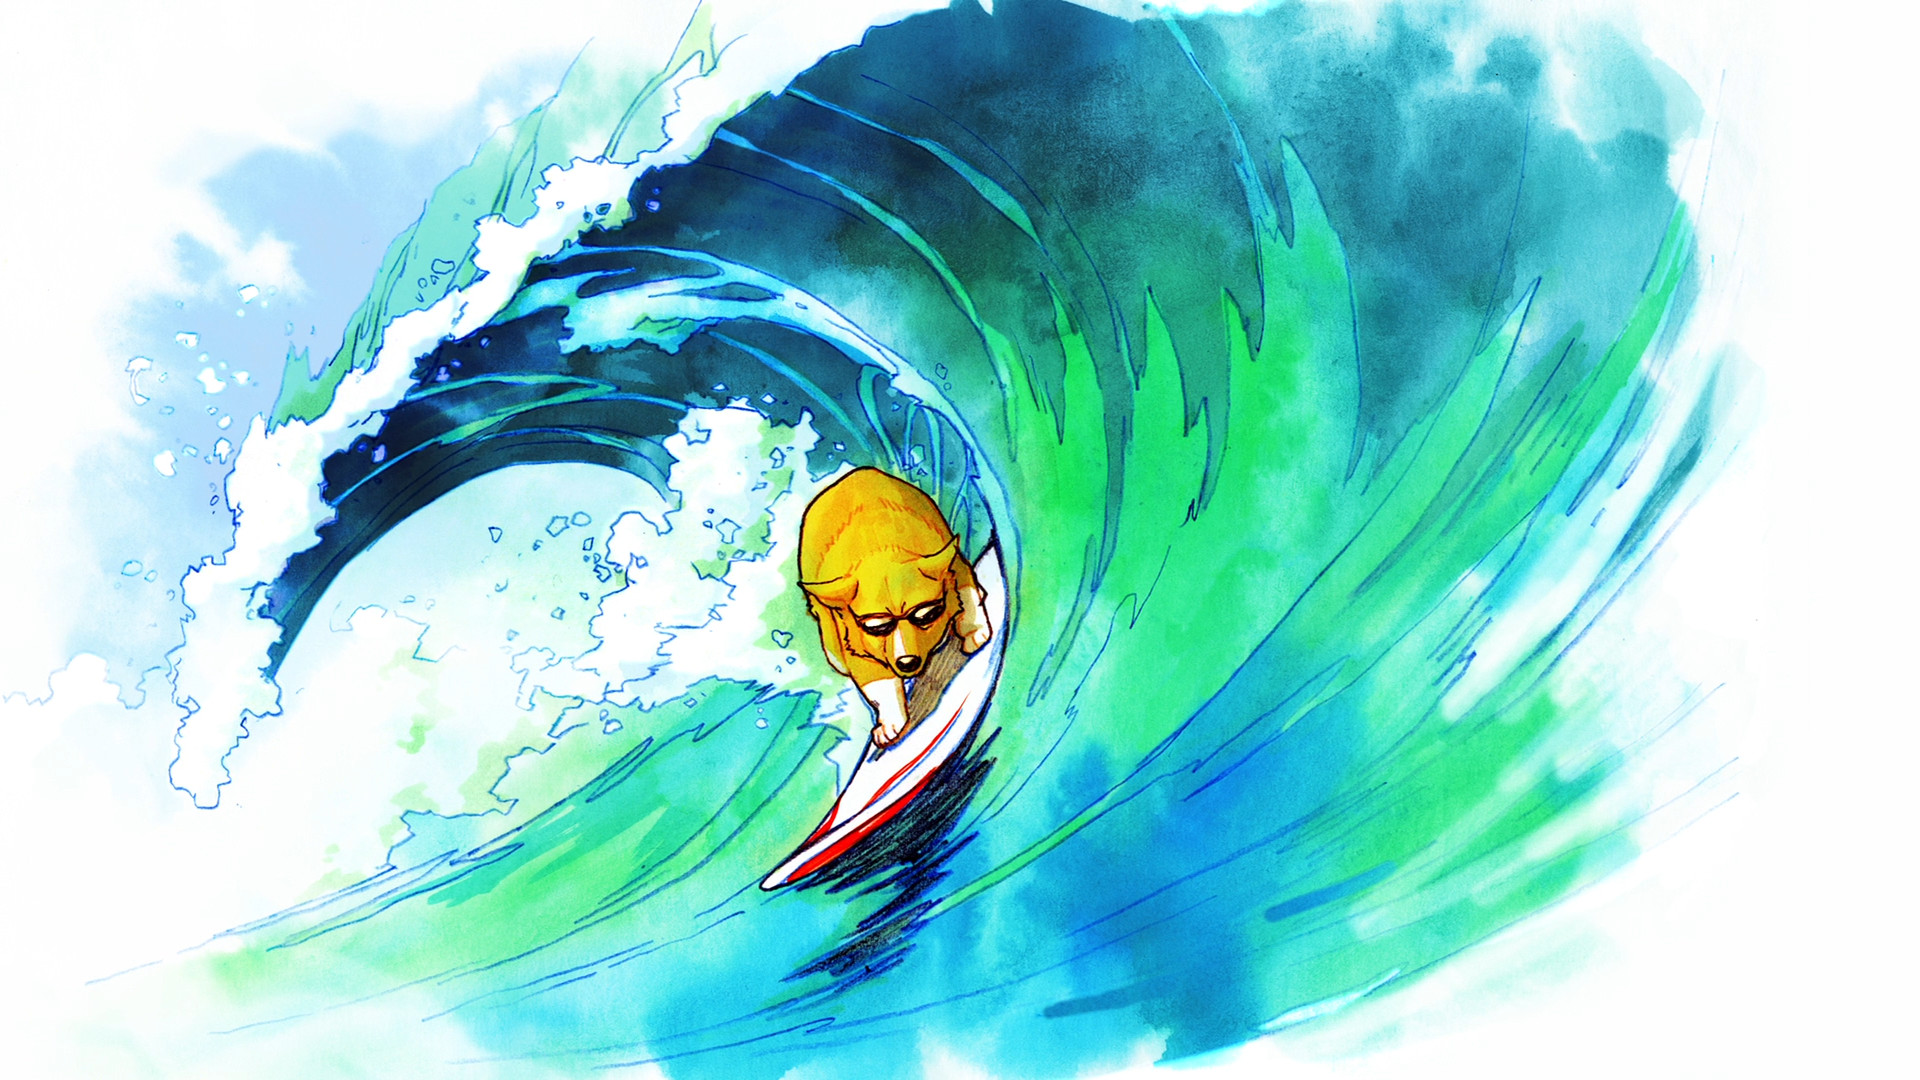 Dog Surf Surfing Wave Drawing Wallpaper